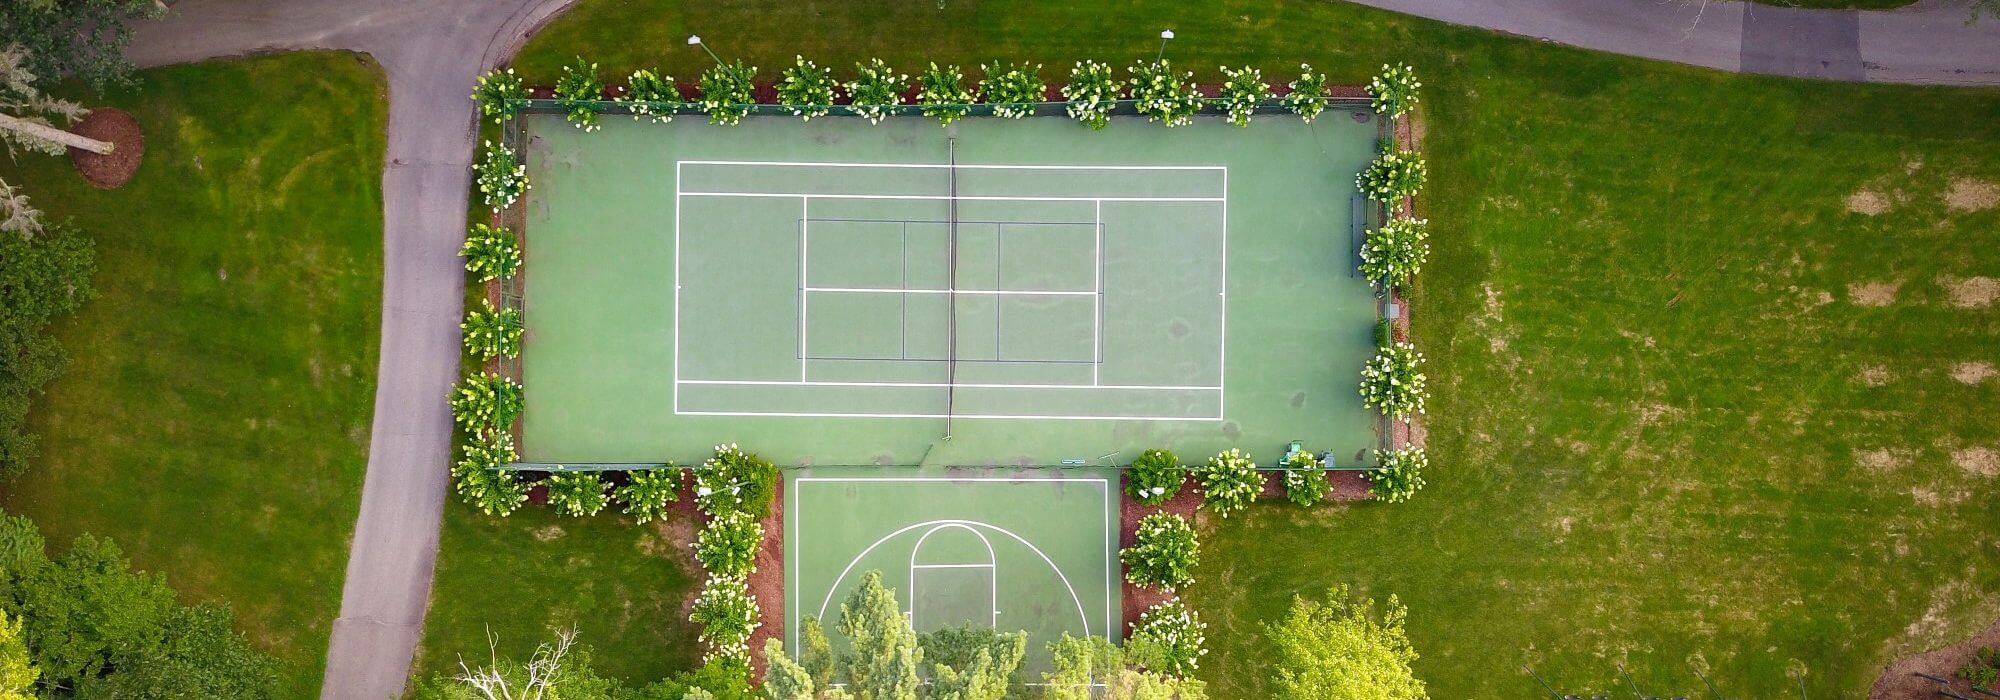 Swimming Pools And Tennis Courts Anna Helps Garden Design